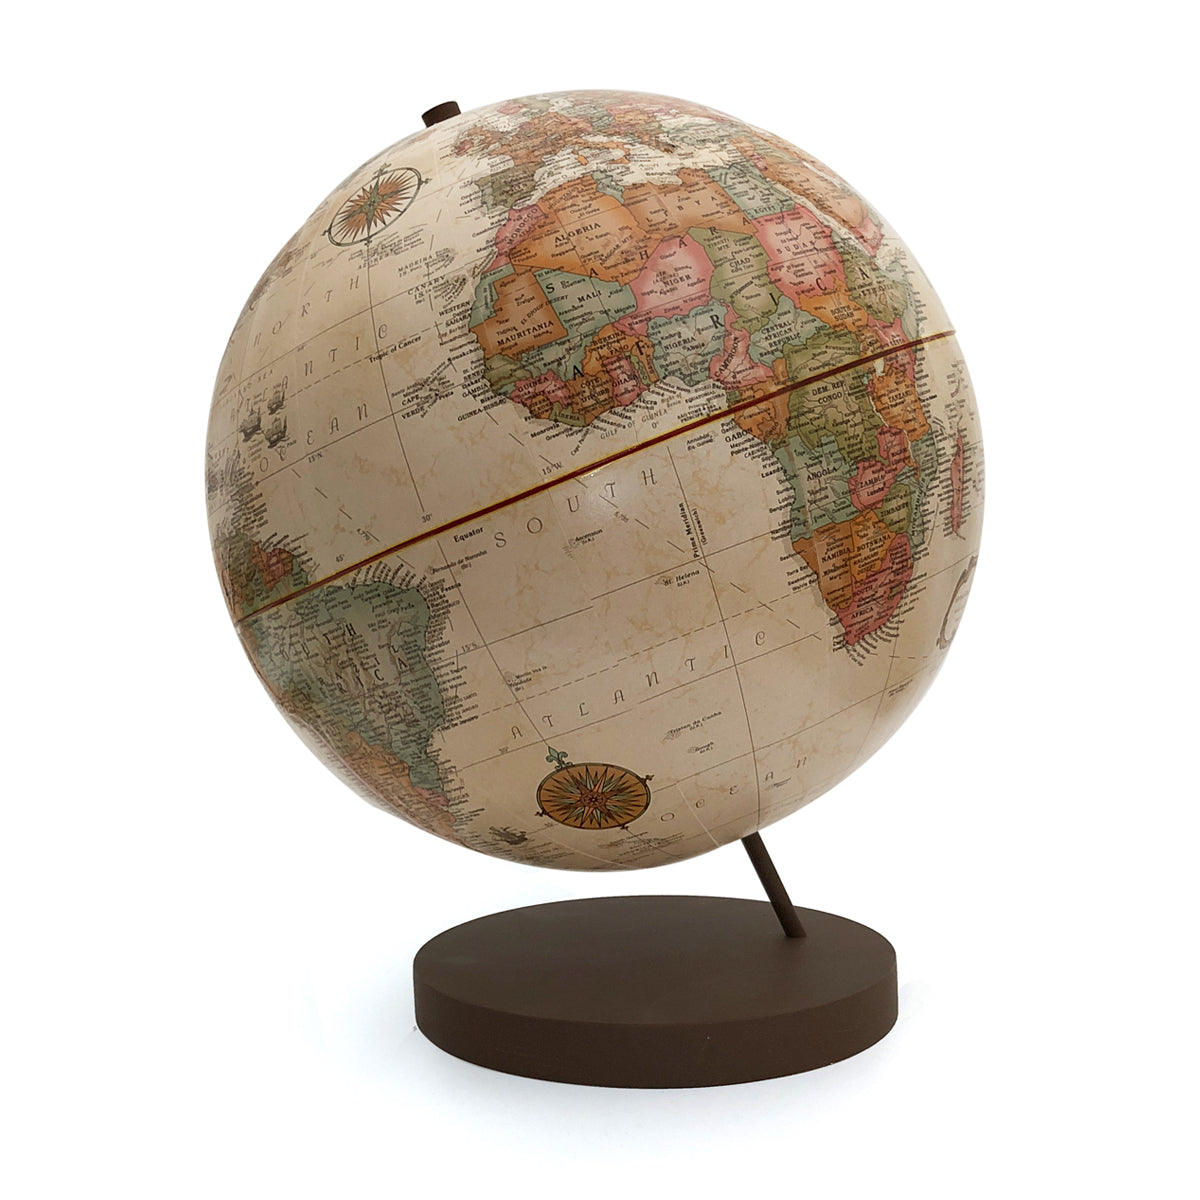 Axis 12 Inch Antique World Globe